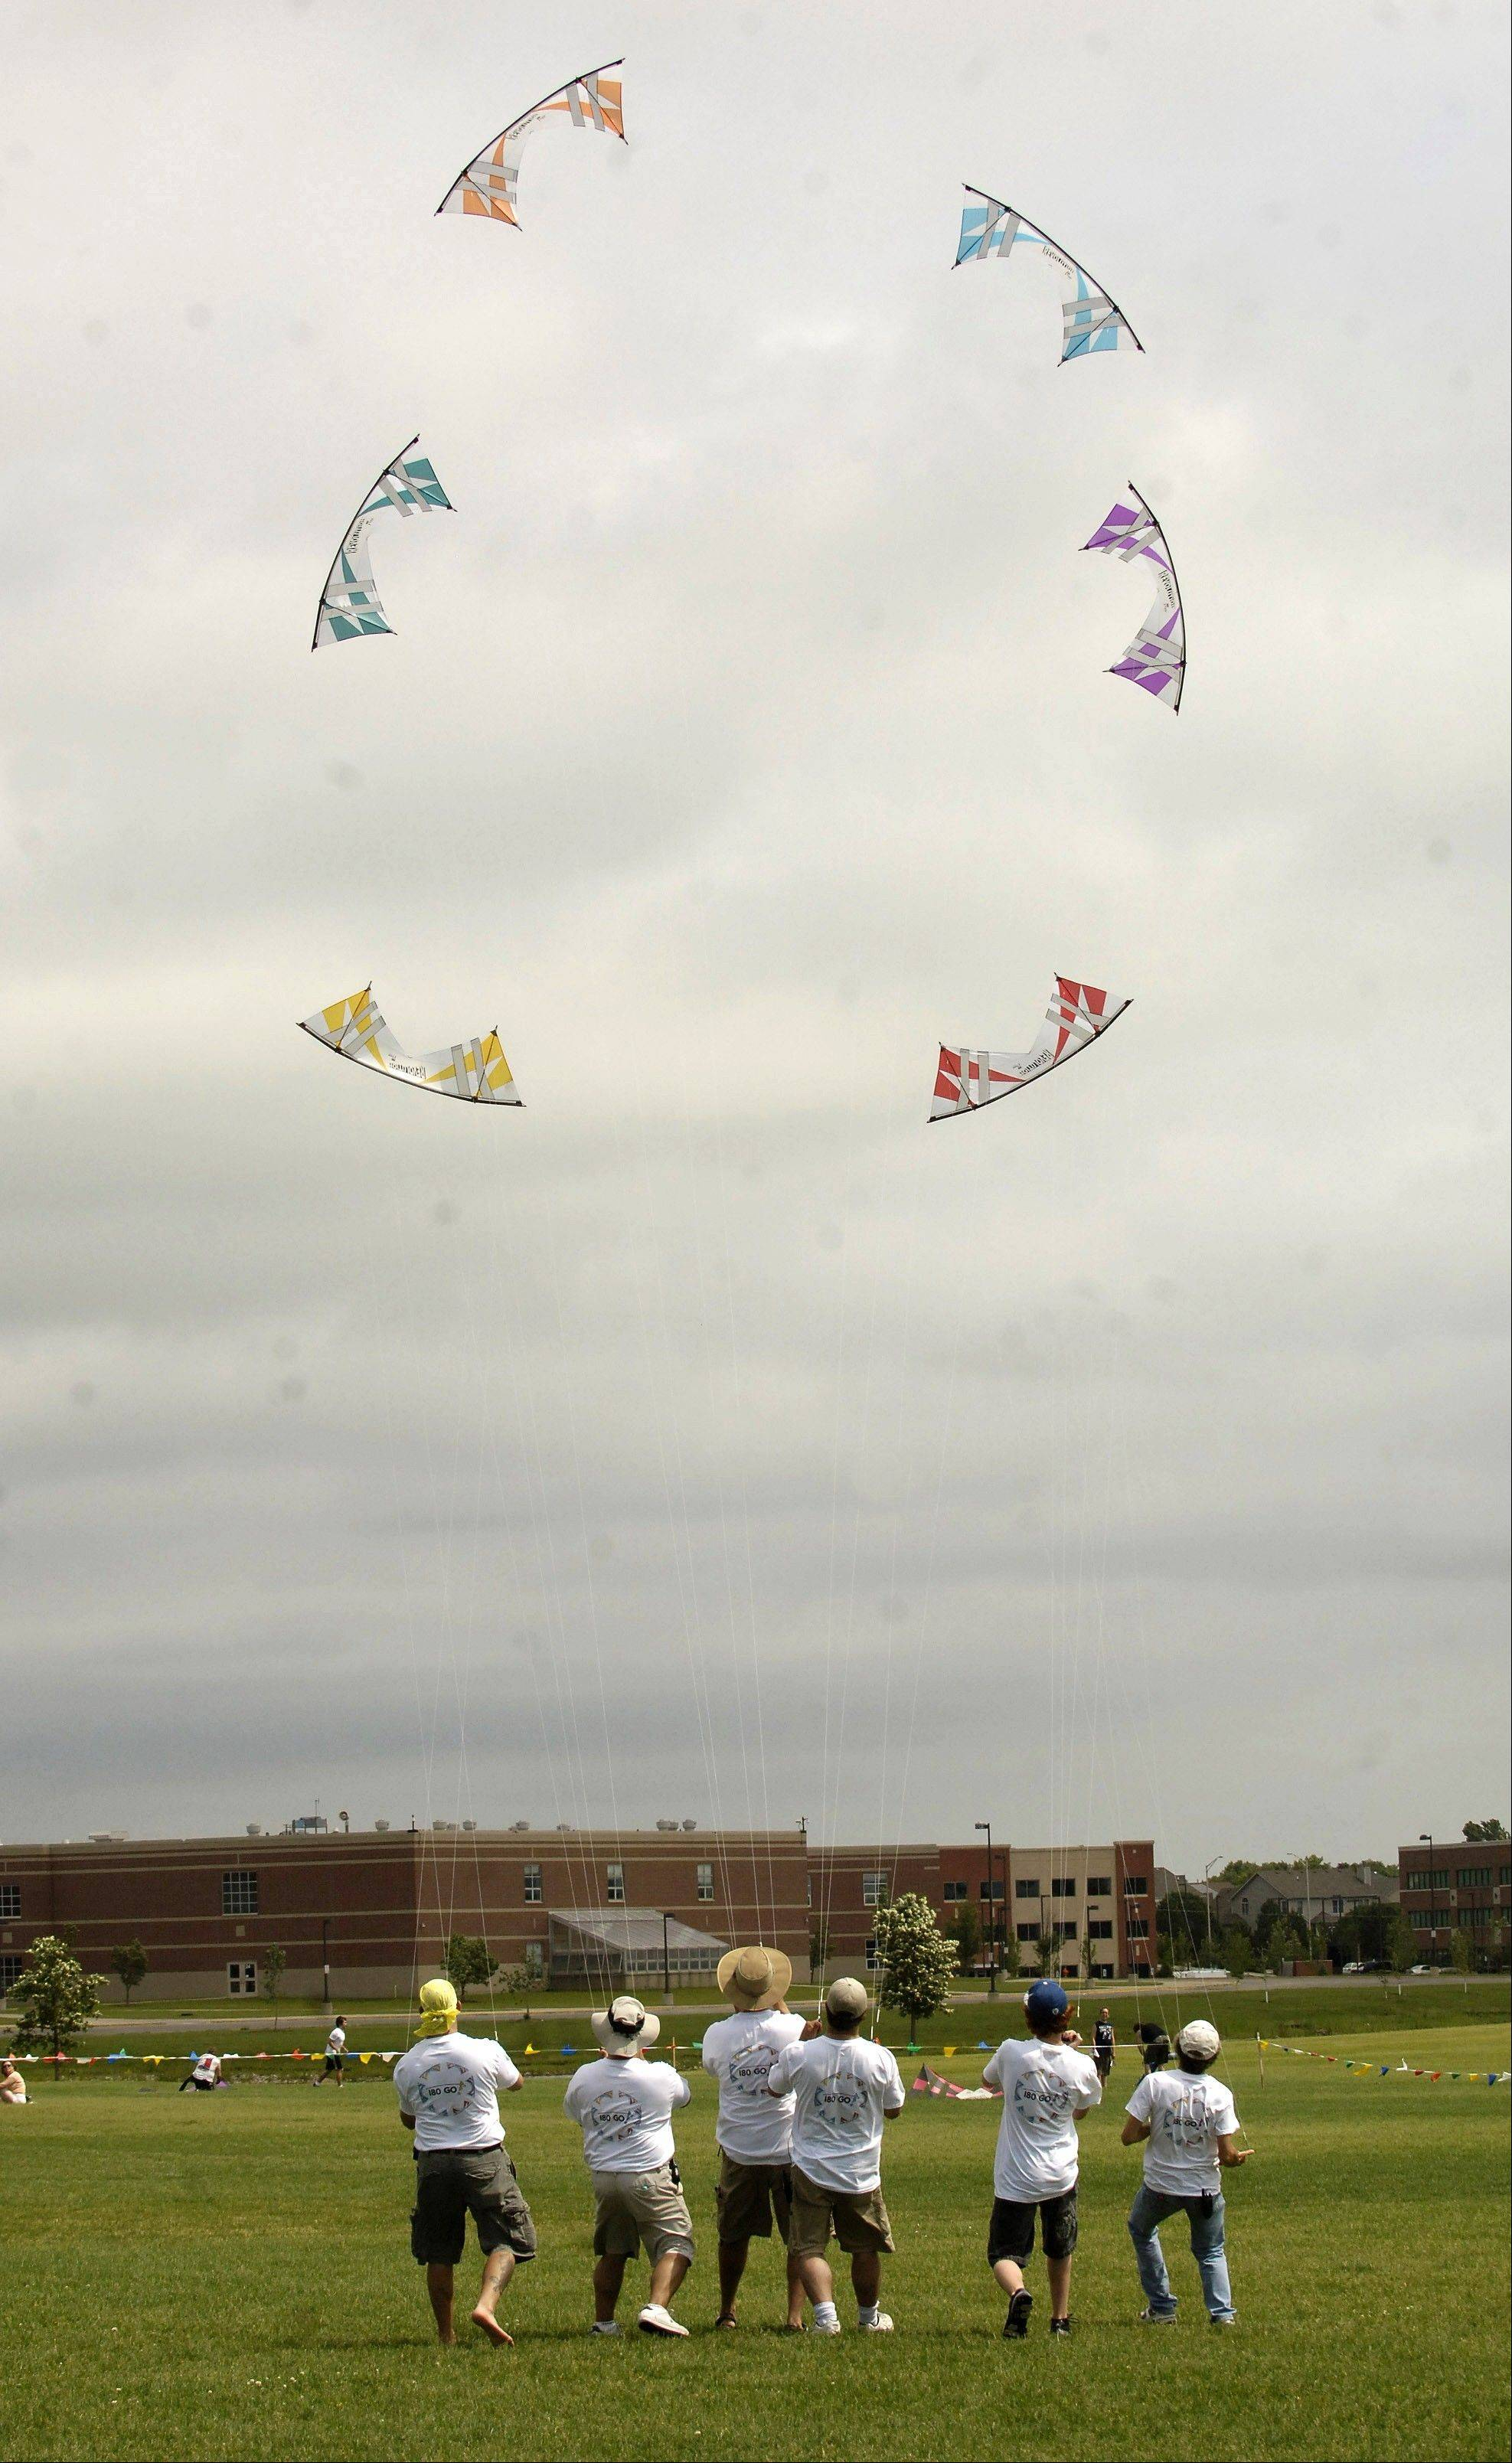 Members of the 180-Go kite team fly their kites to a Santana song during the 2009 Frontier Kite Fly Festival in Naperville.